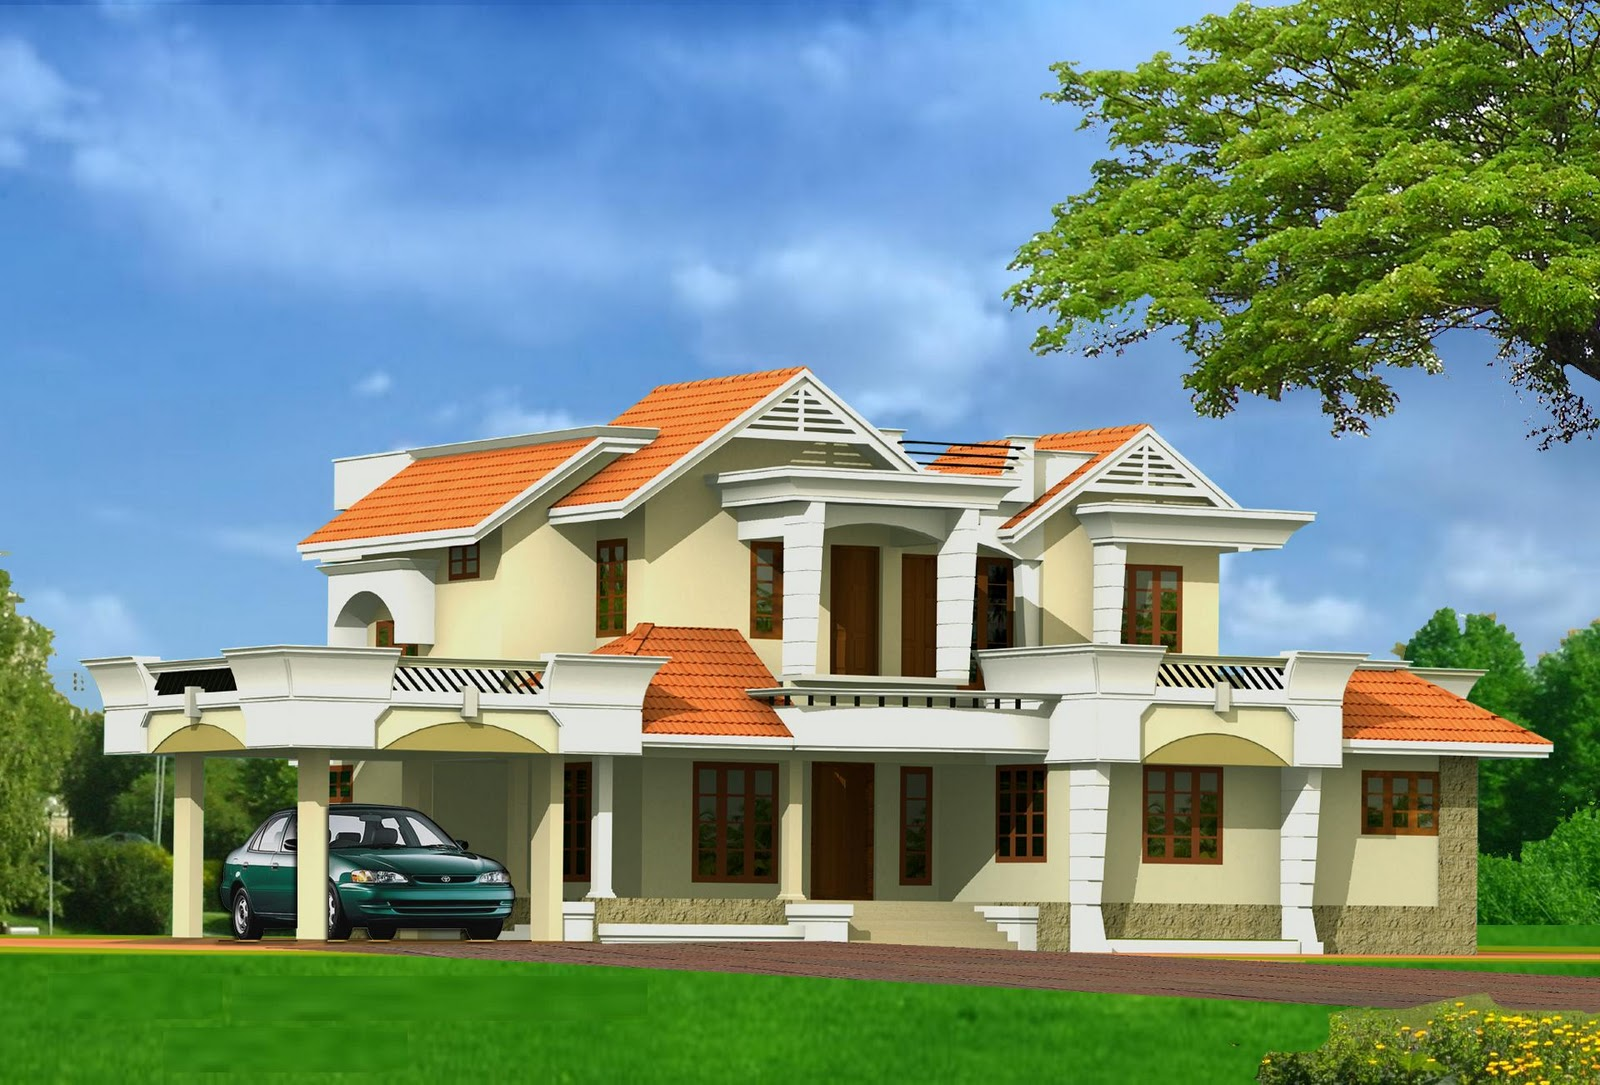 House plans and design architectural designs of for Residential house plans and designs